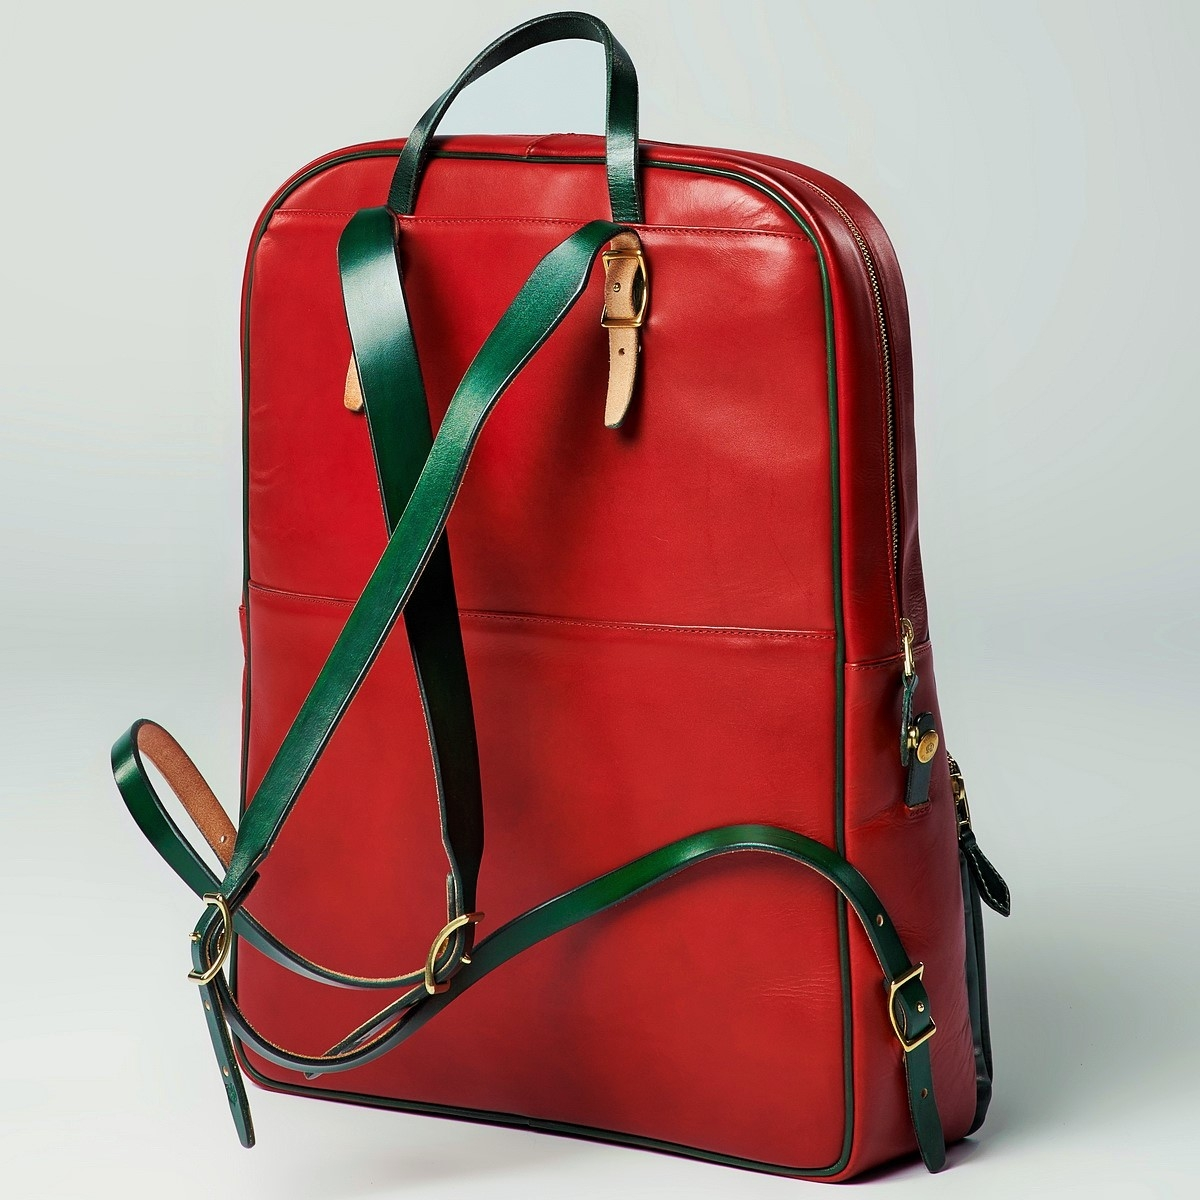 Backpack GRAN TURISMO 17'' grassy green & red currant